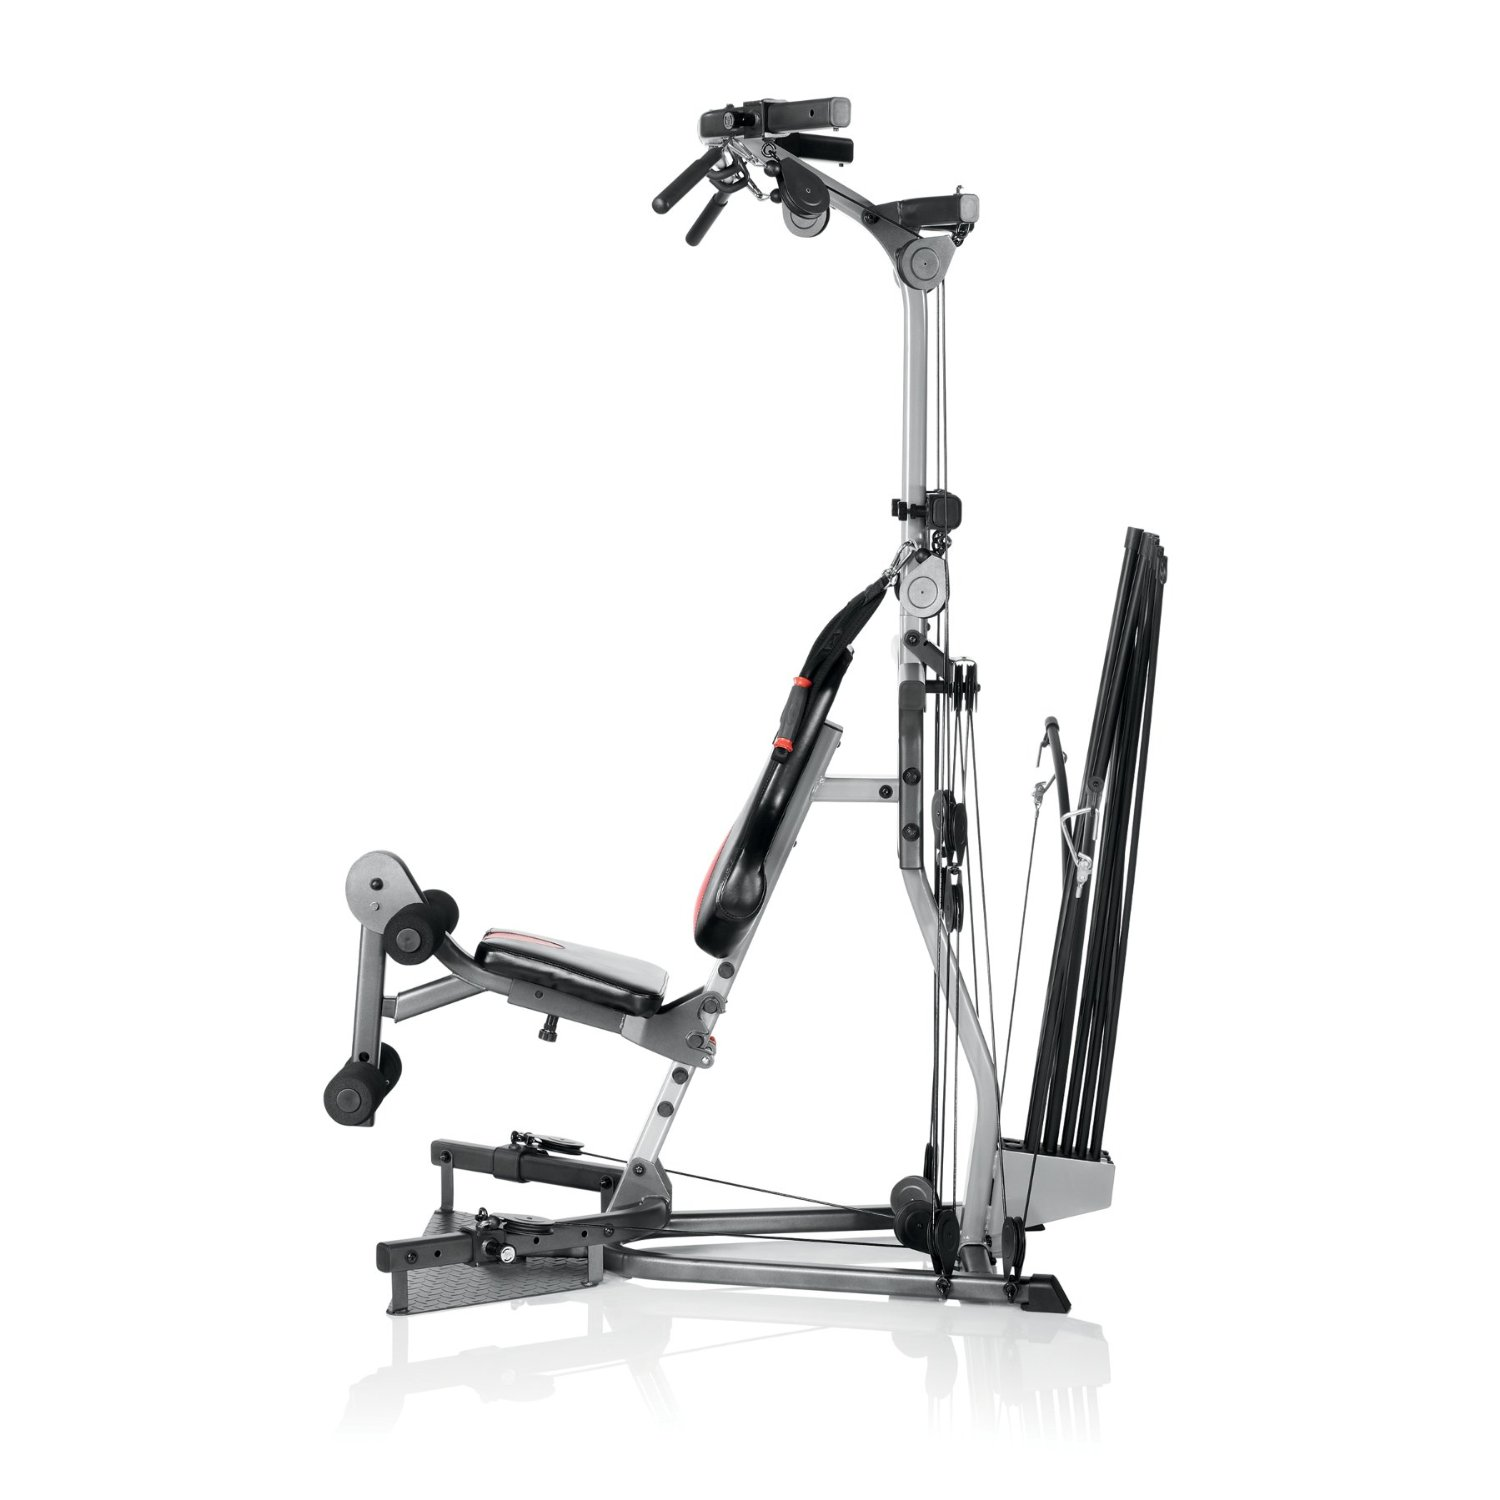 Top review of best home gym equipment